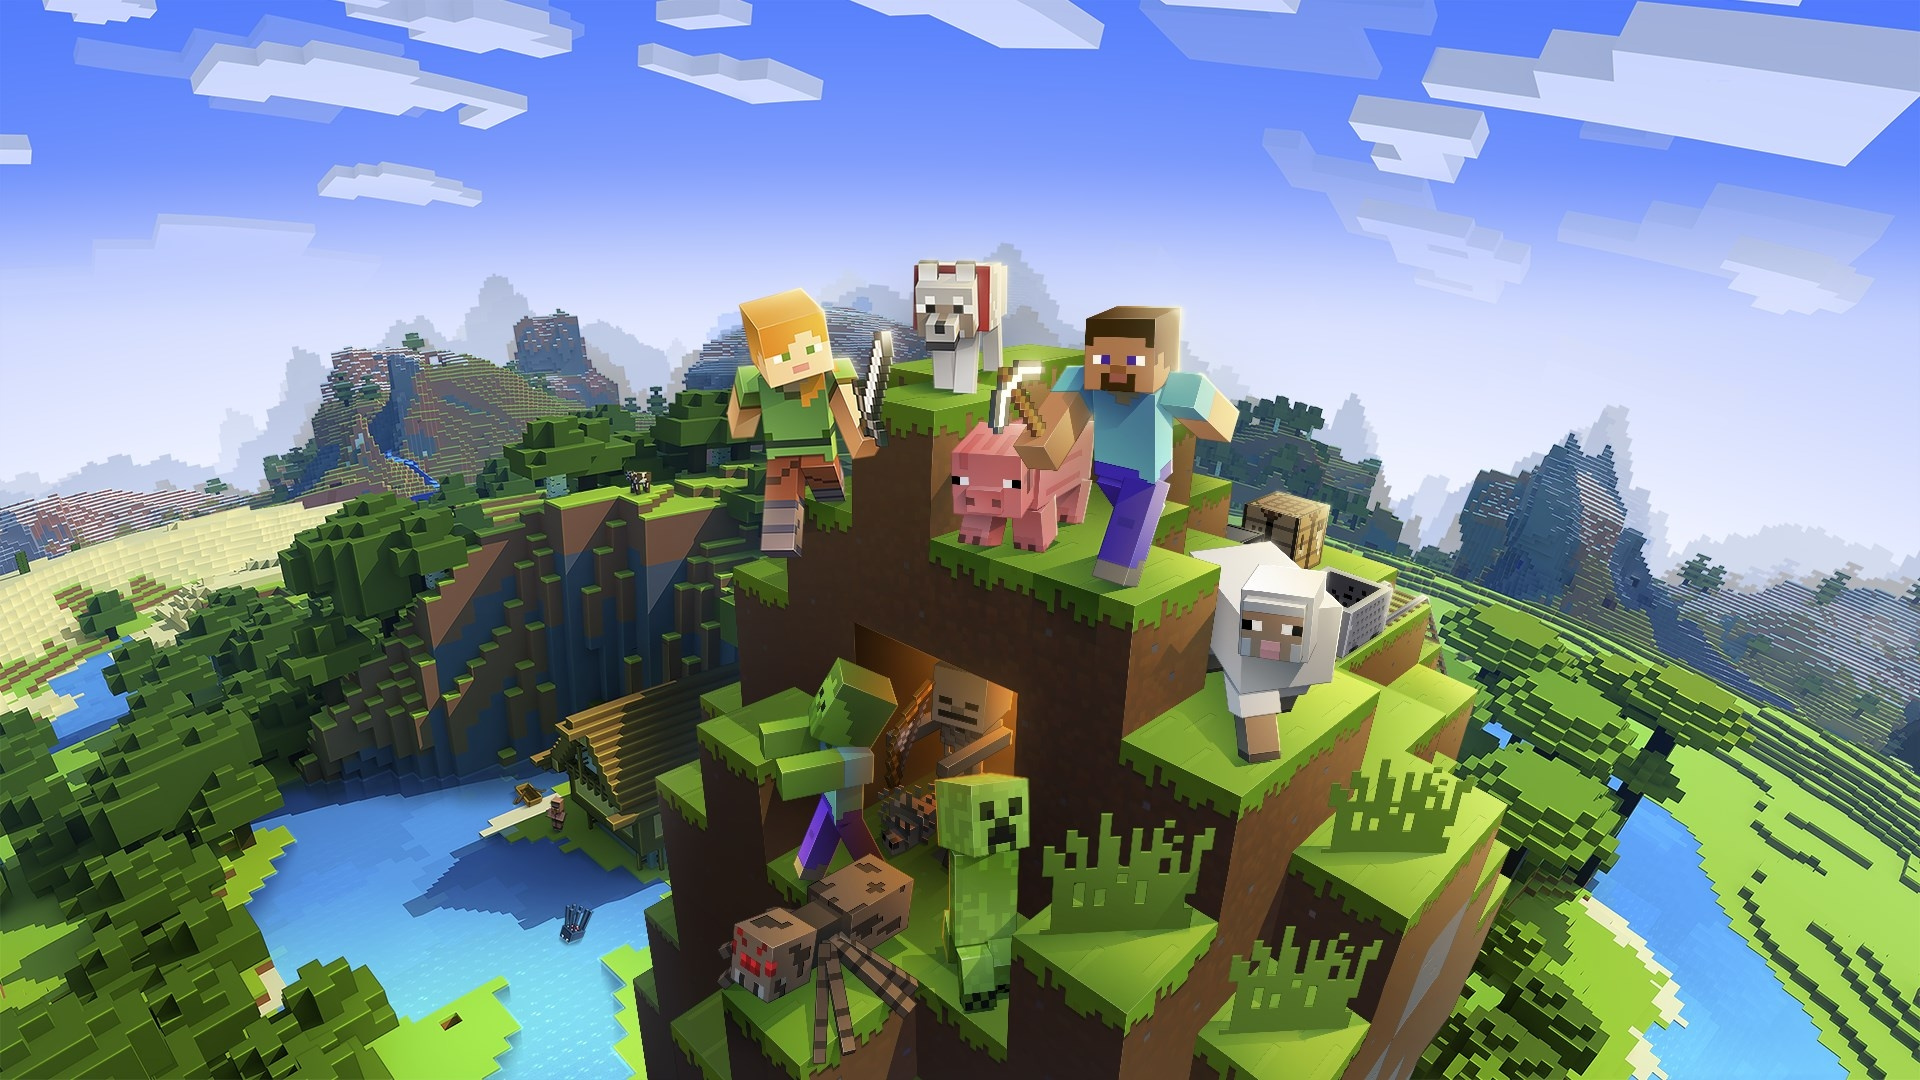 Minecraft On Switch Becomes Xbox Game Studios' First Game In Japan To Reach One Million Physical Sales